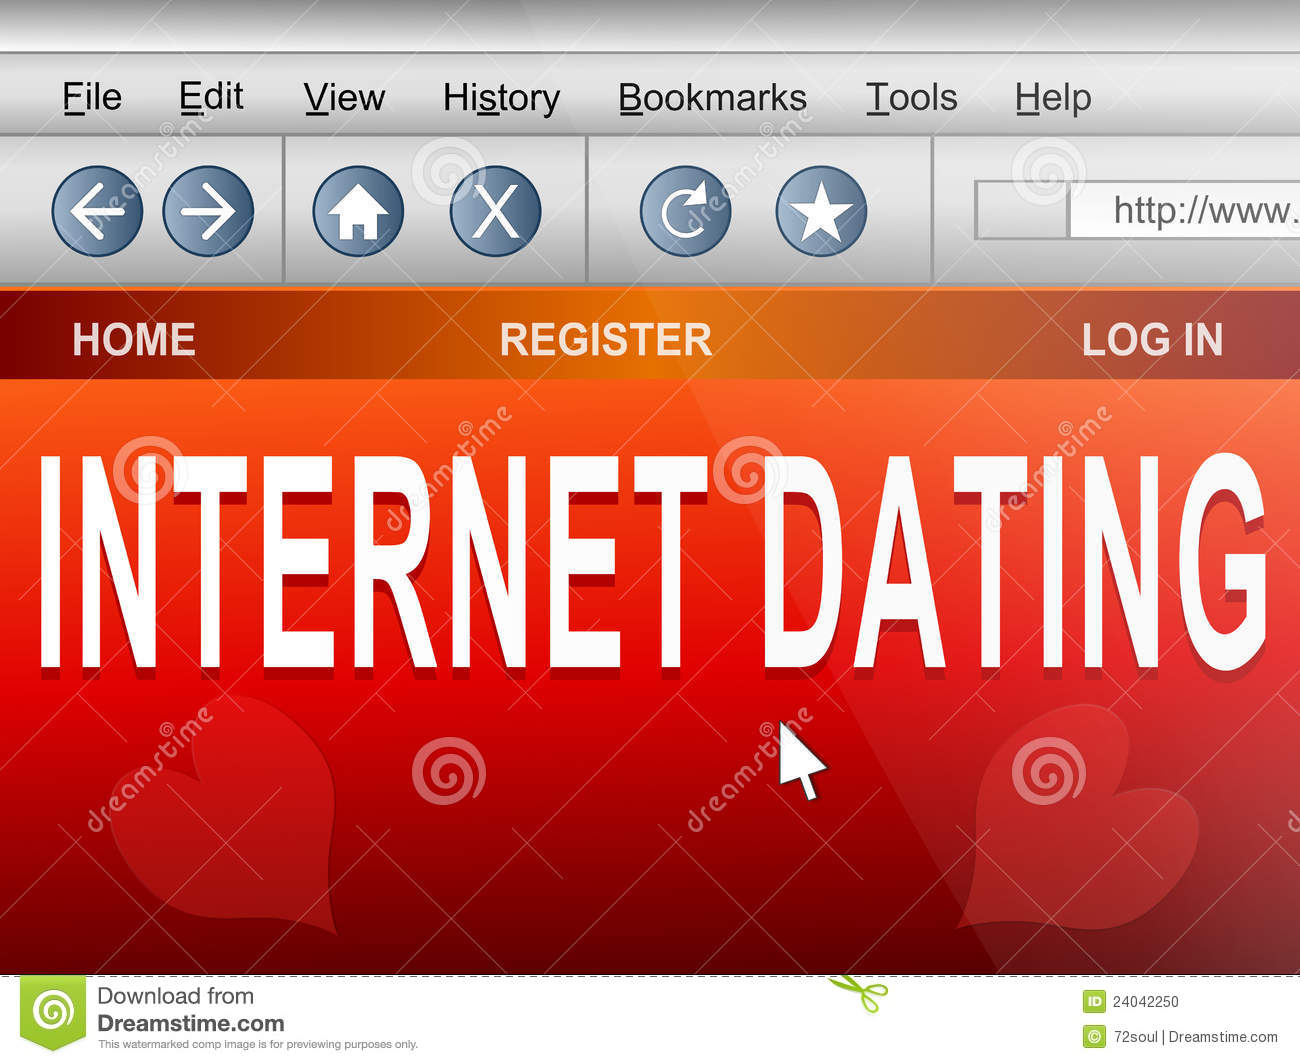 What browsers online dating